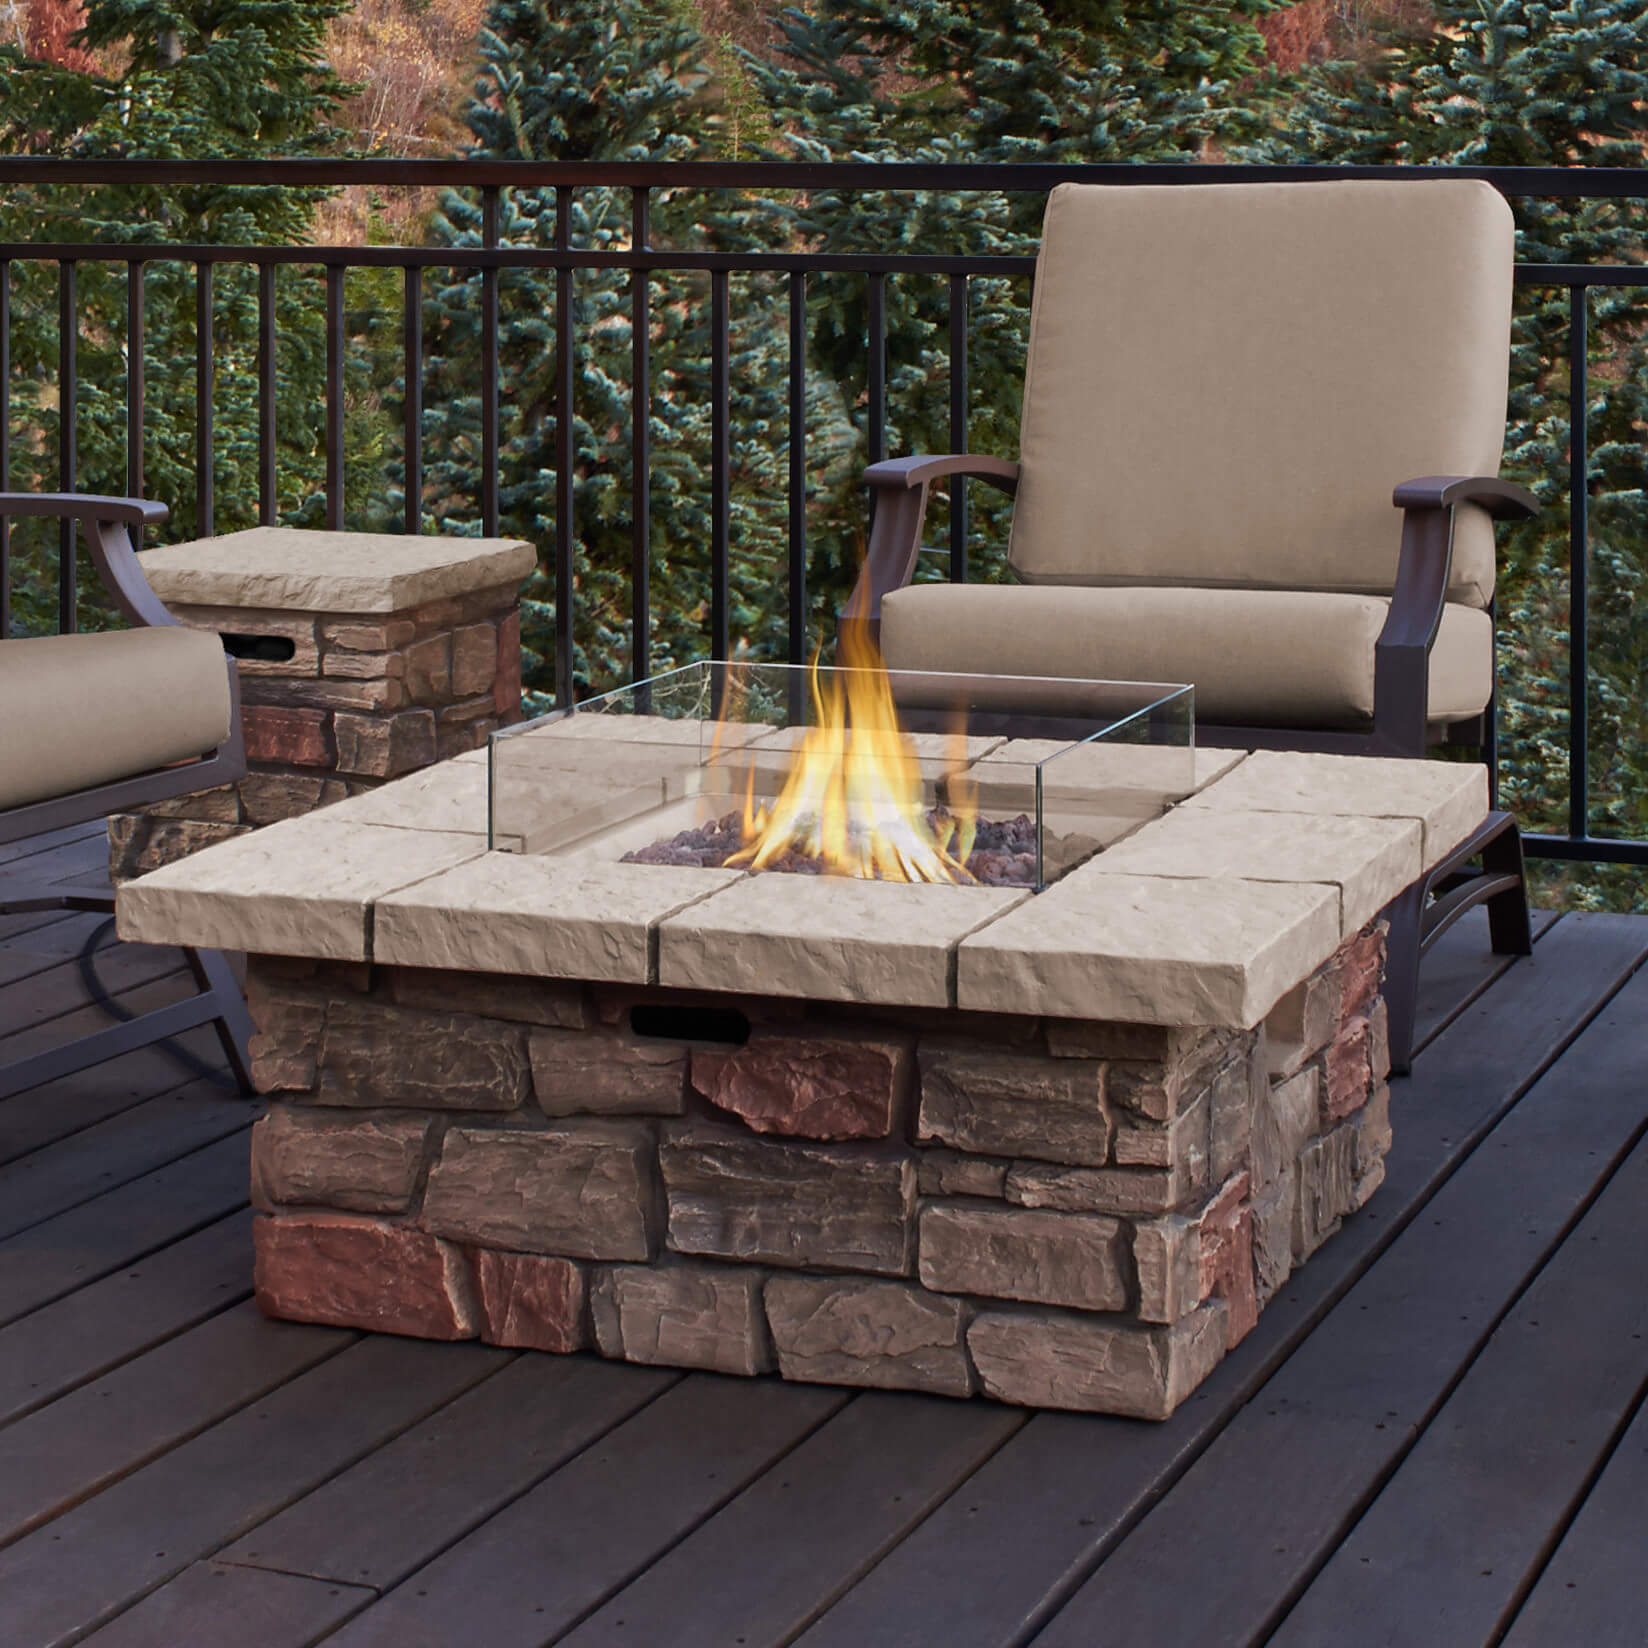 Top 15 Types Of Propane Patio Fire Pits With Table Ing Guide In Sizing 1648 X